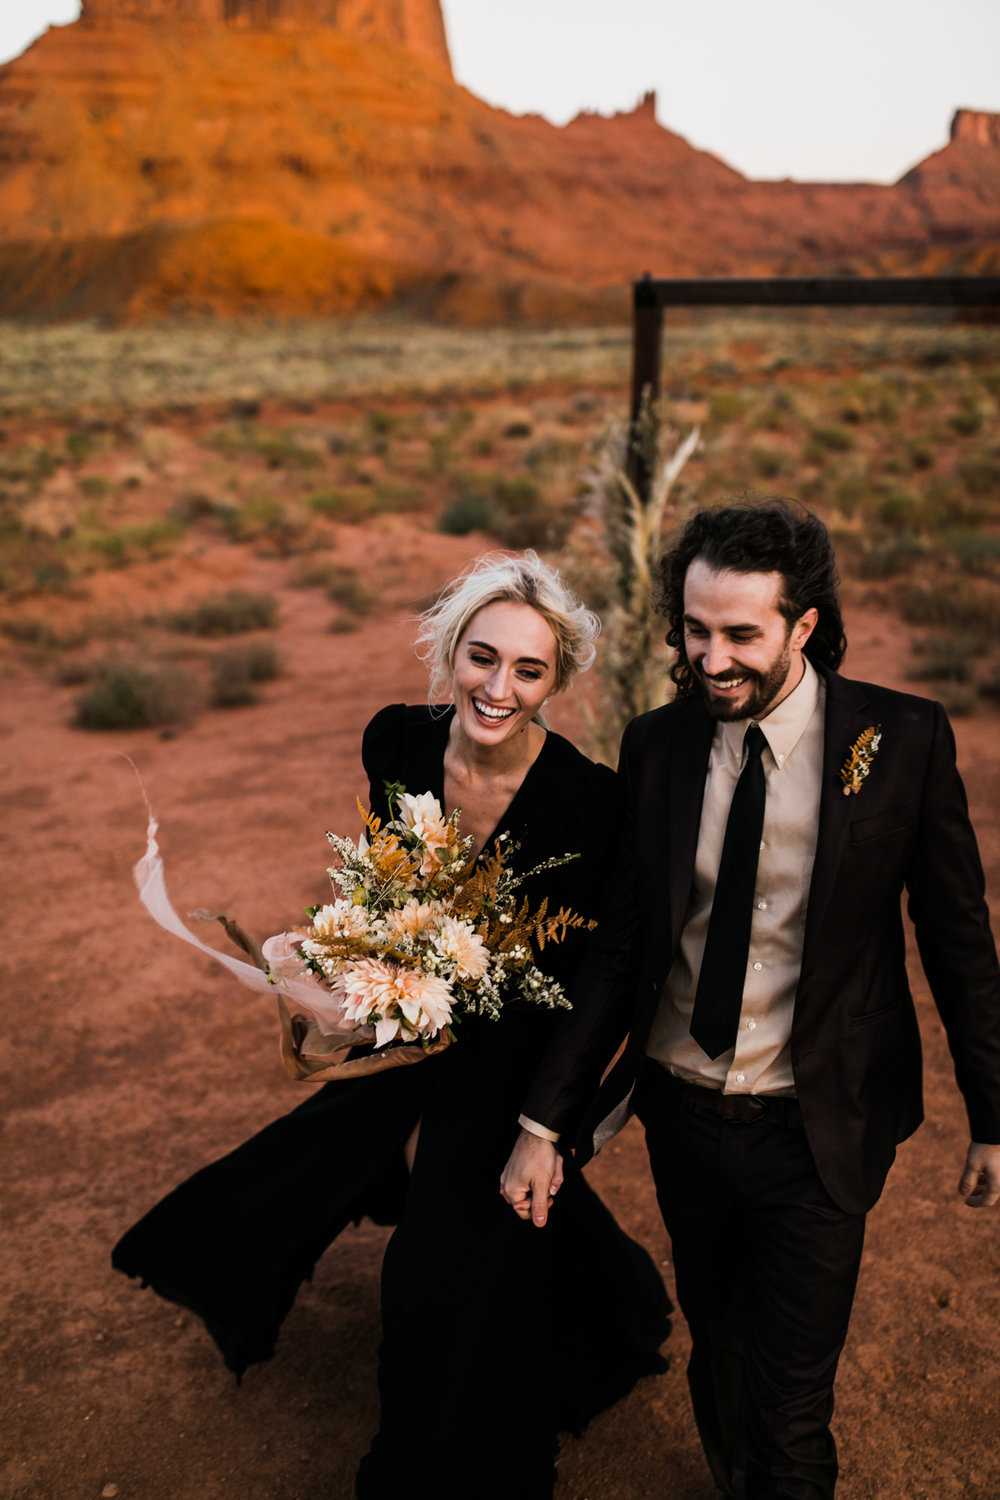 moab, utah elopement + black wedding dress | destination adventure wedding photographers | the hearnes adventure photography | www.thehearnes.com